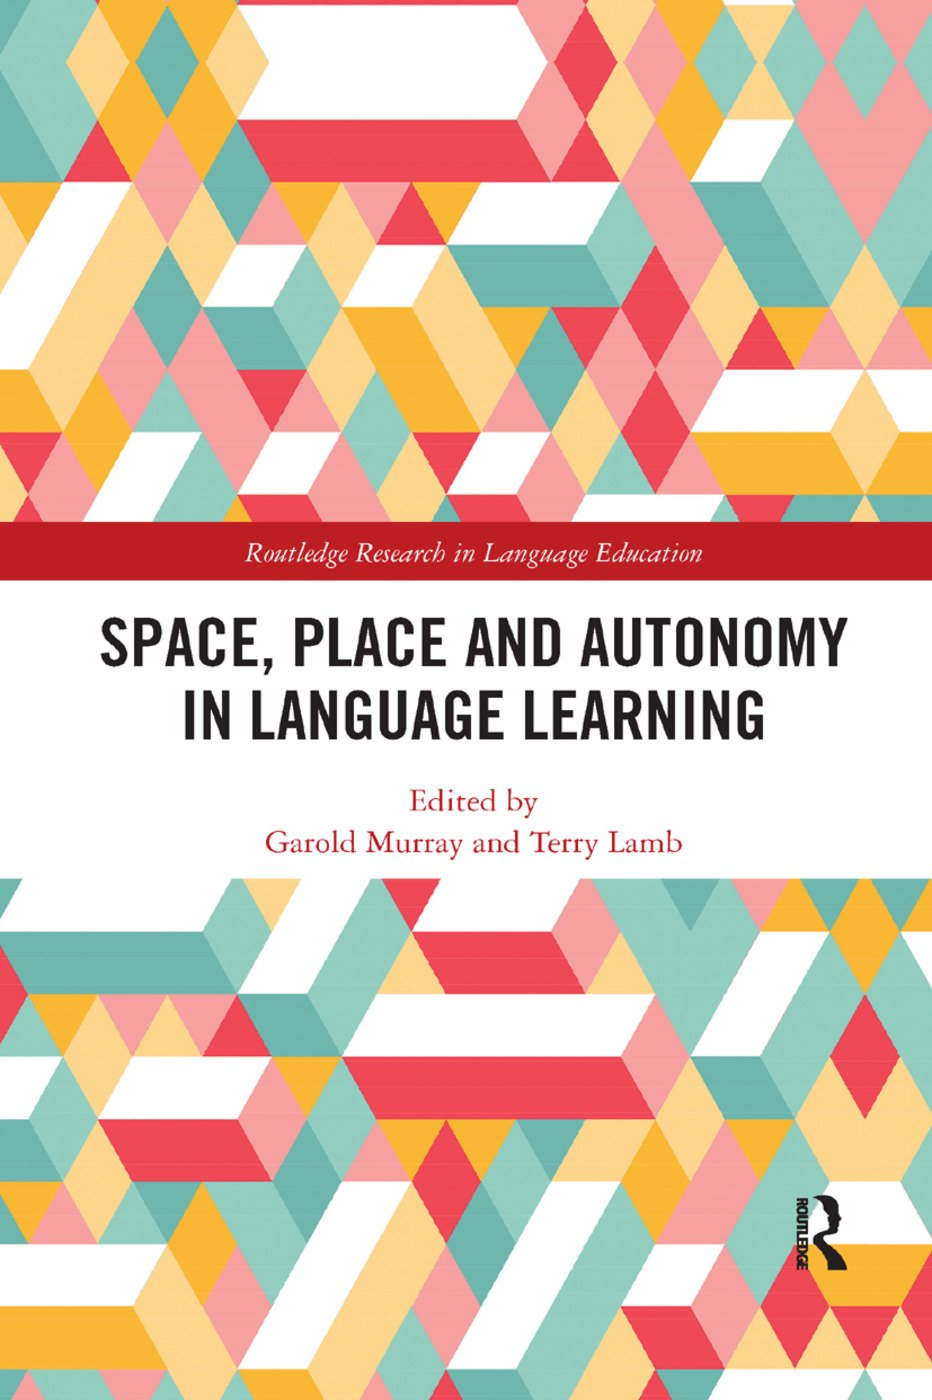 Space, Place and Autonomy in Language Learning book cover